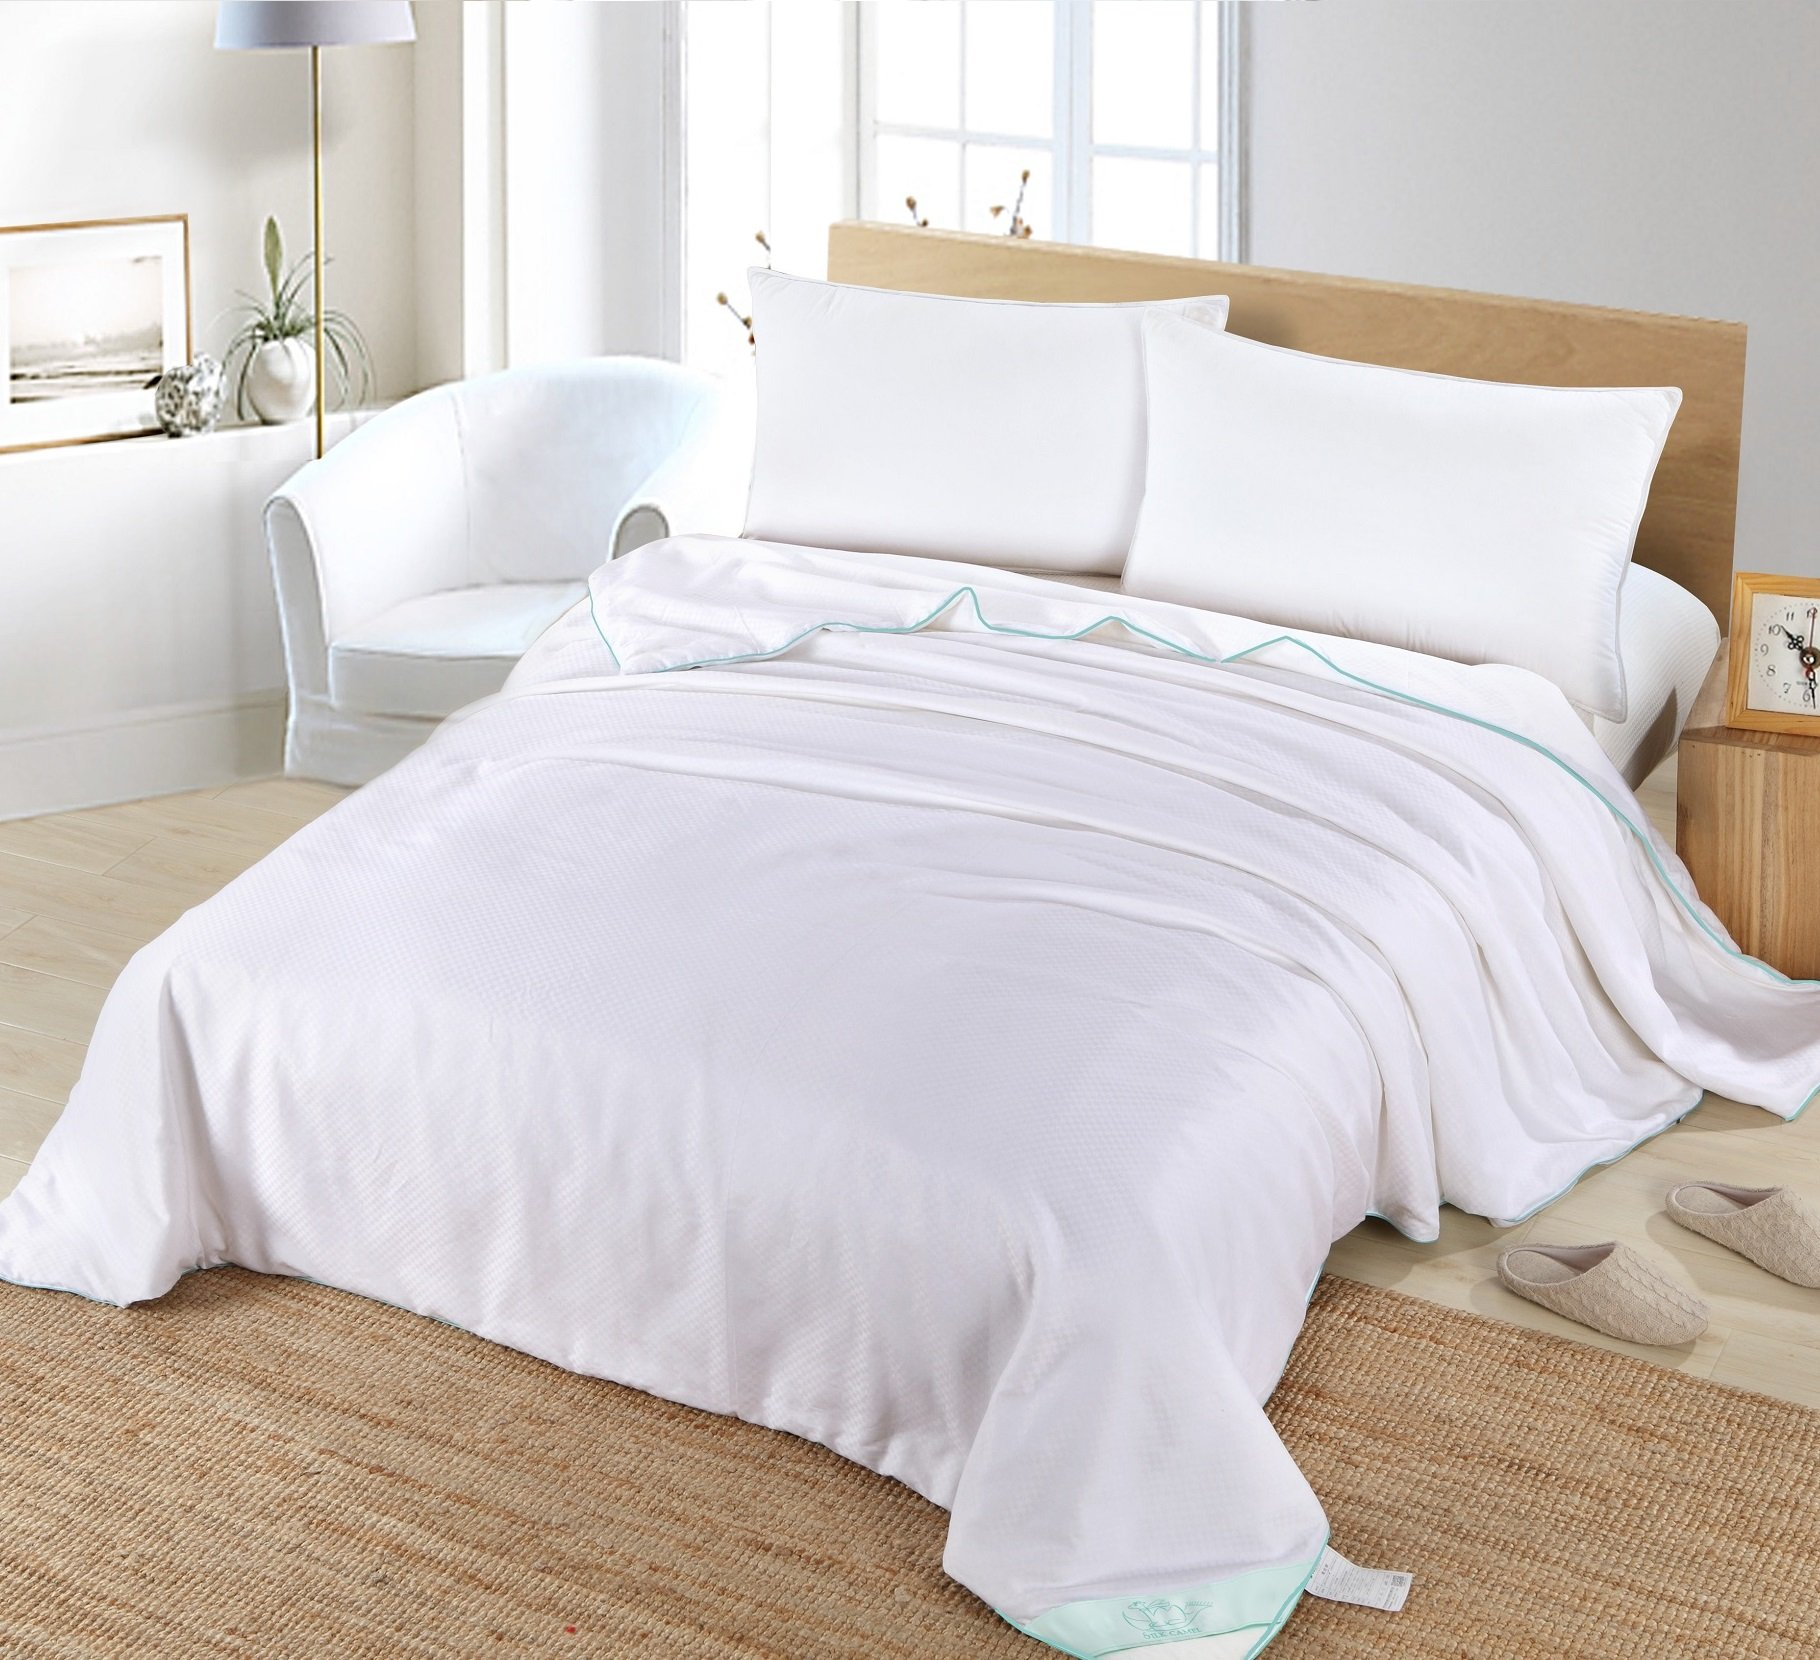 Silk Camel Luxury Allergy-free Comforter filled with 100% natural long strand mulberry silk for Spring / All Season - King Size by Silk Camel